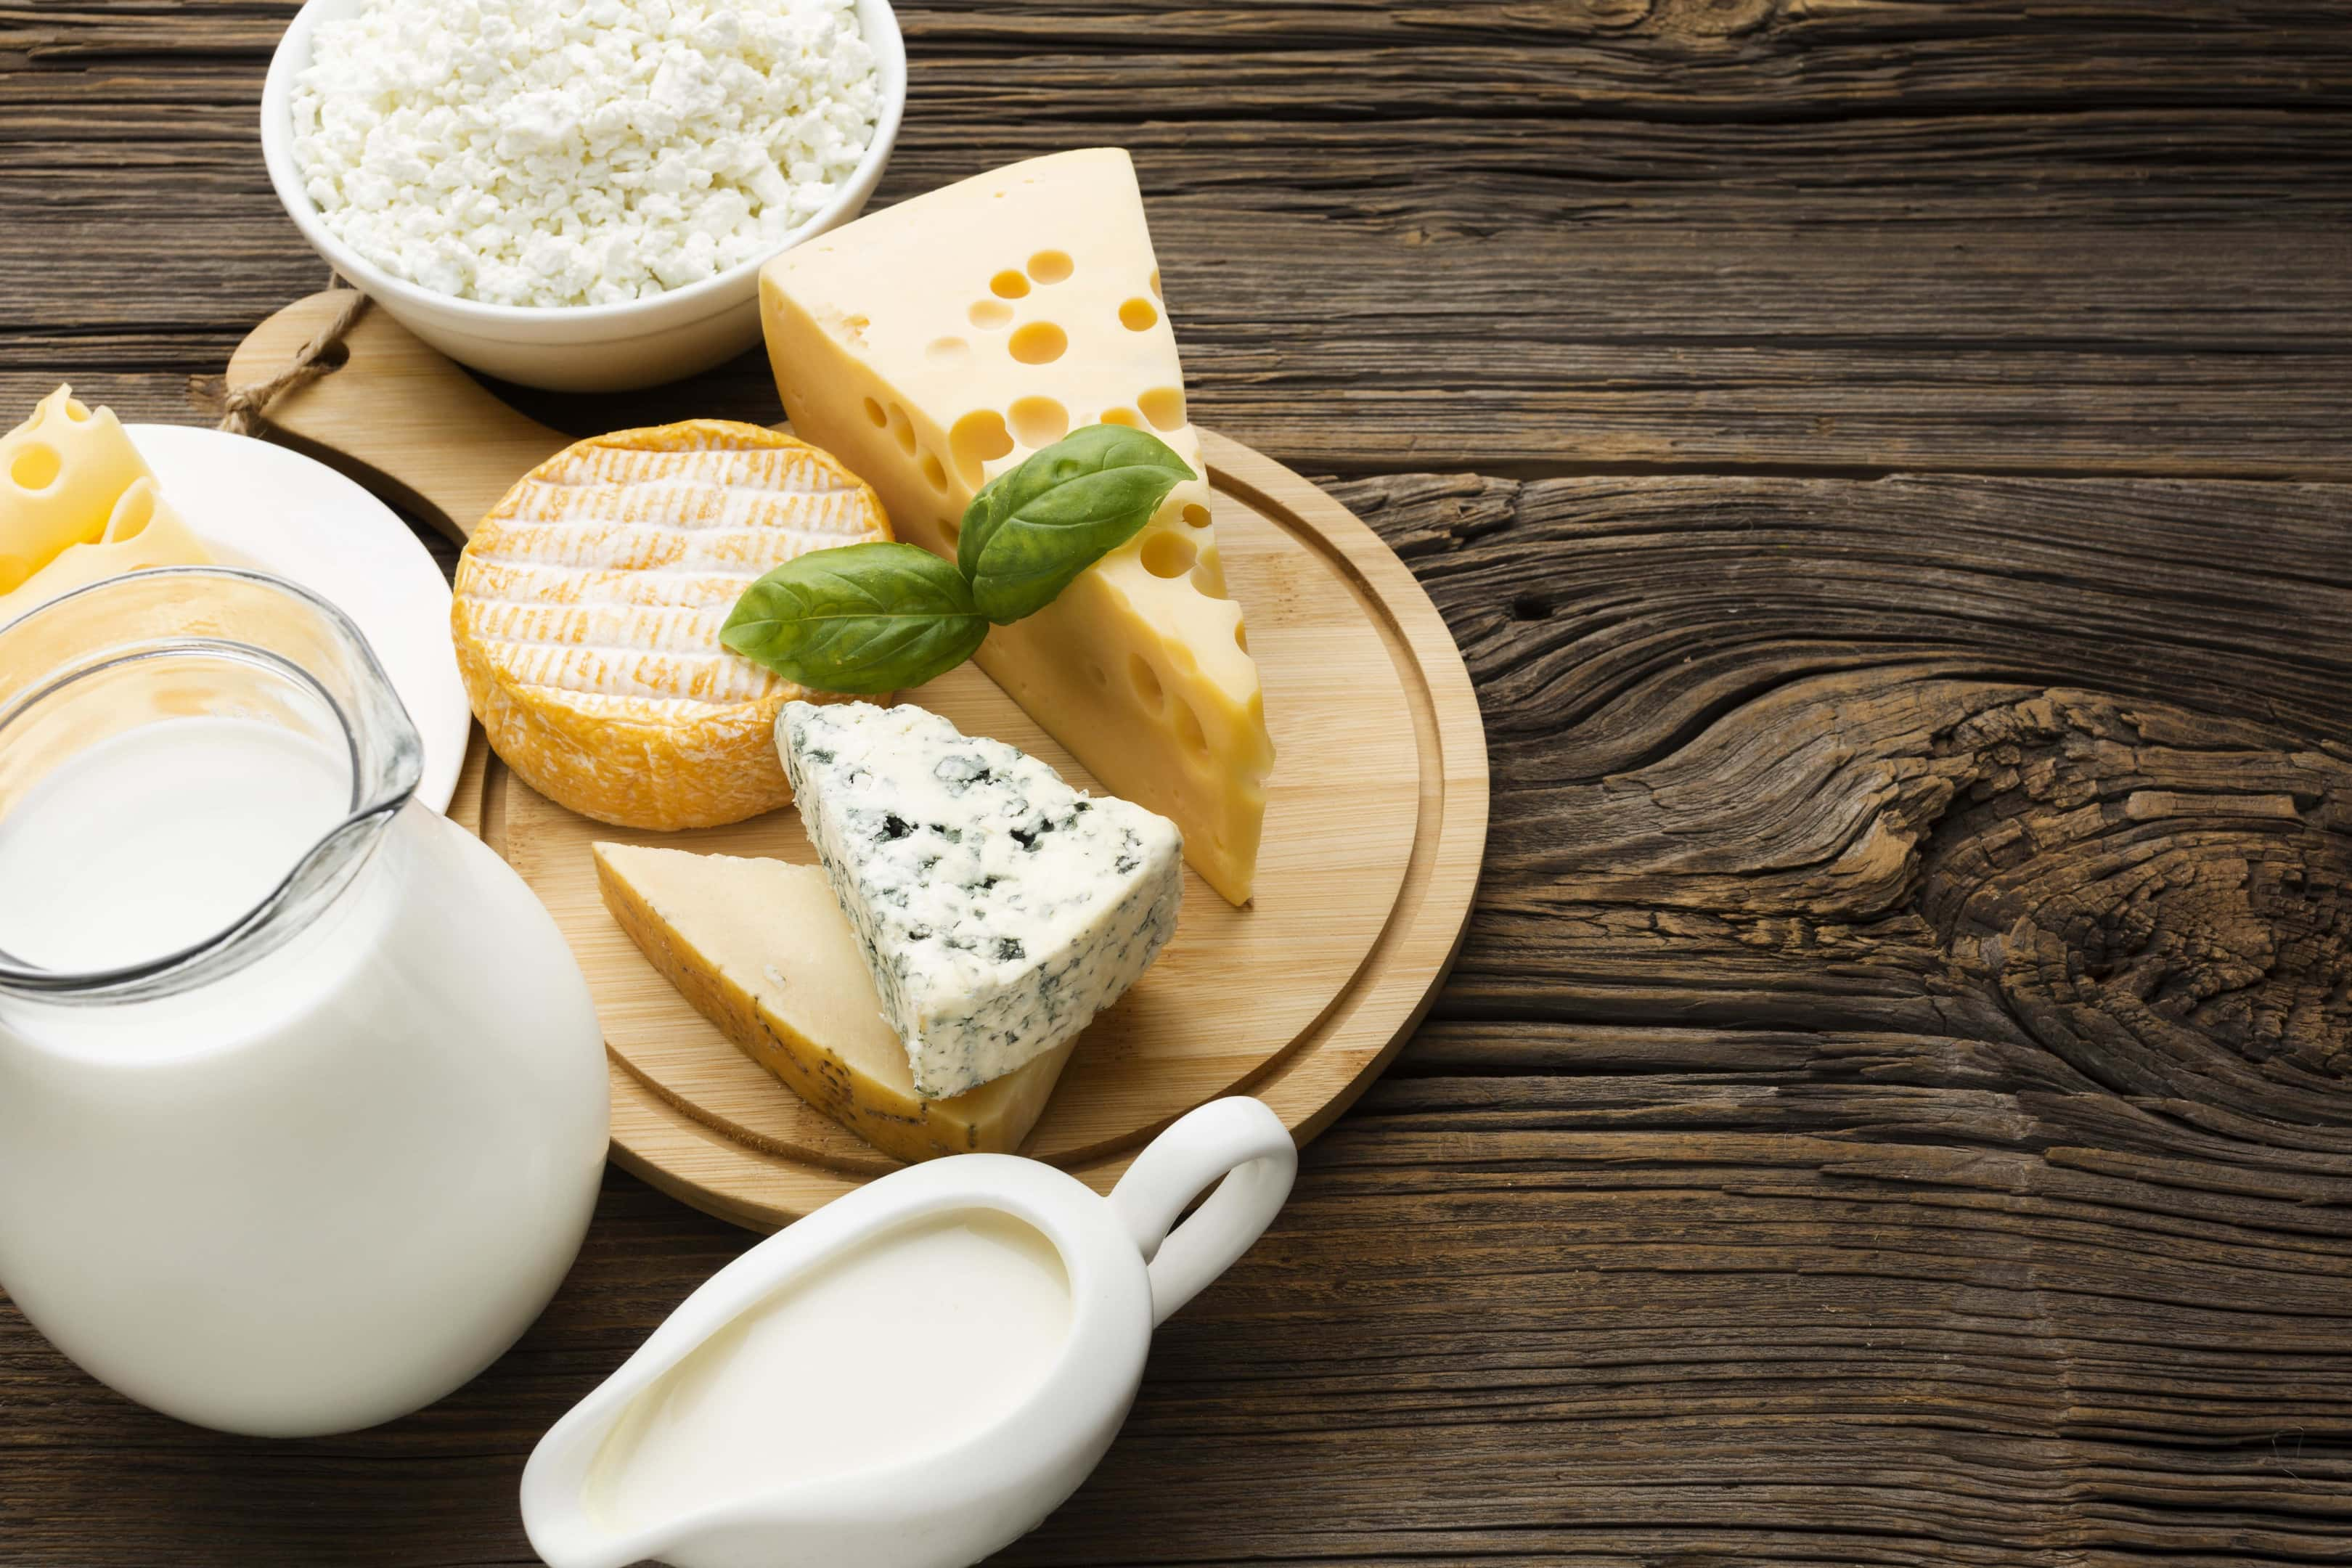 Cheese With Milk on Wooden Table